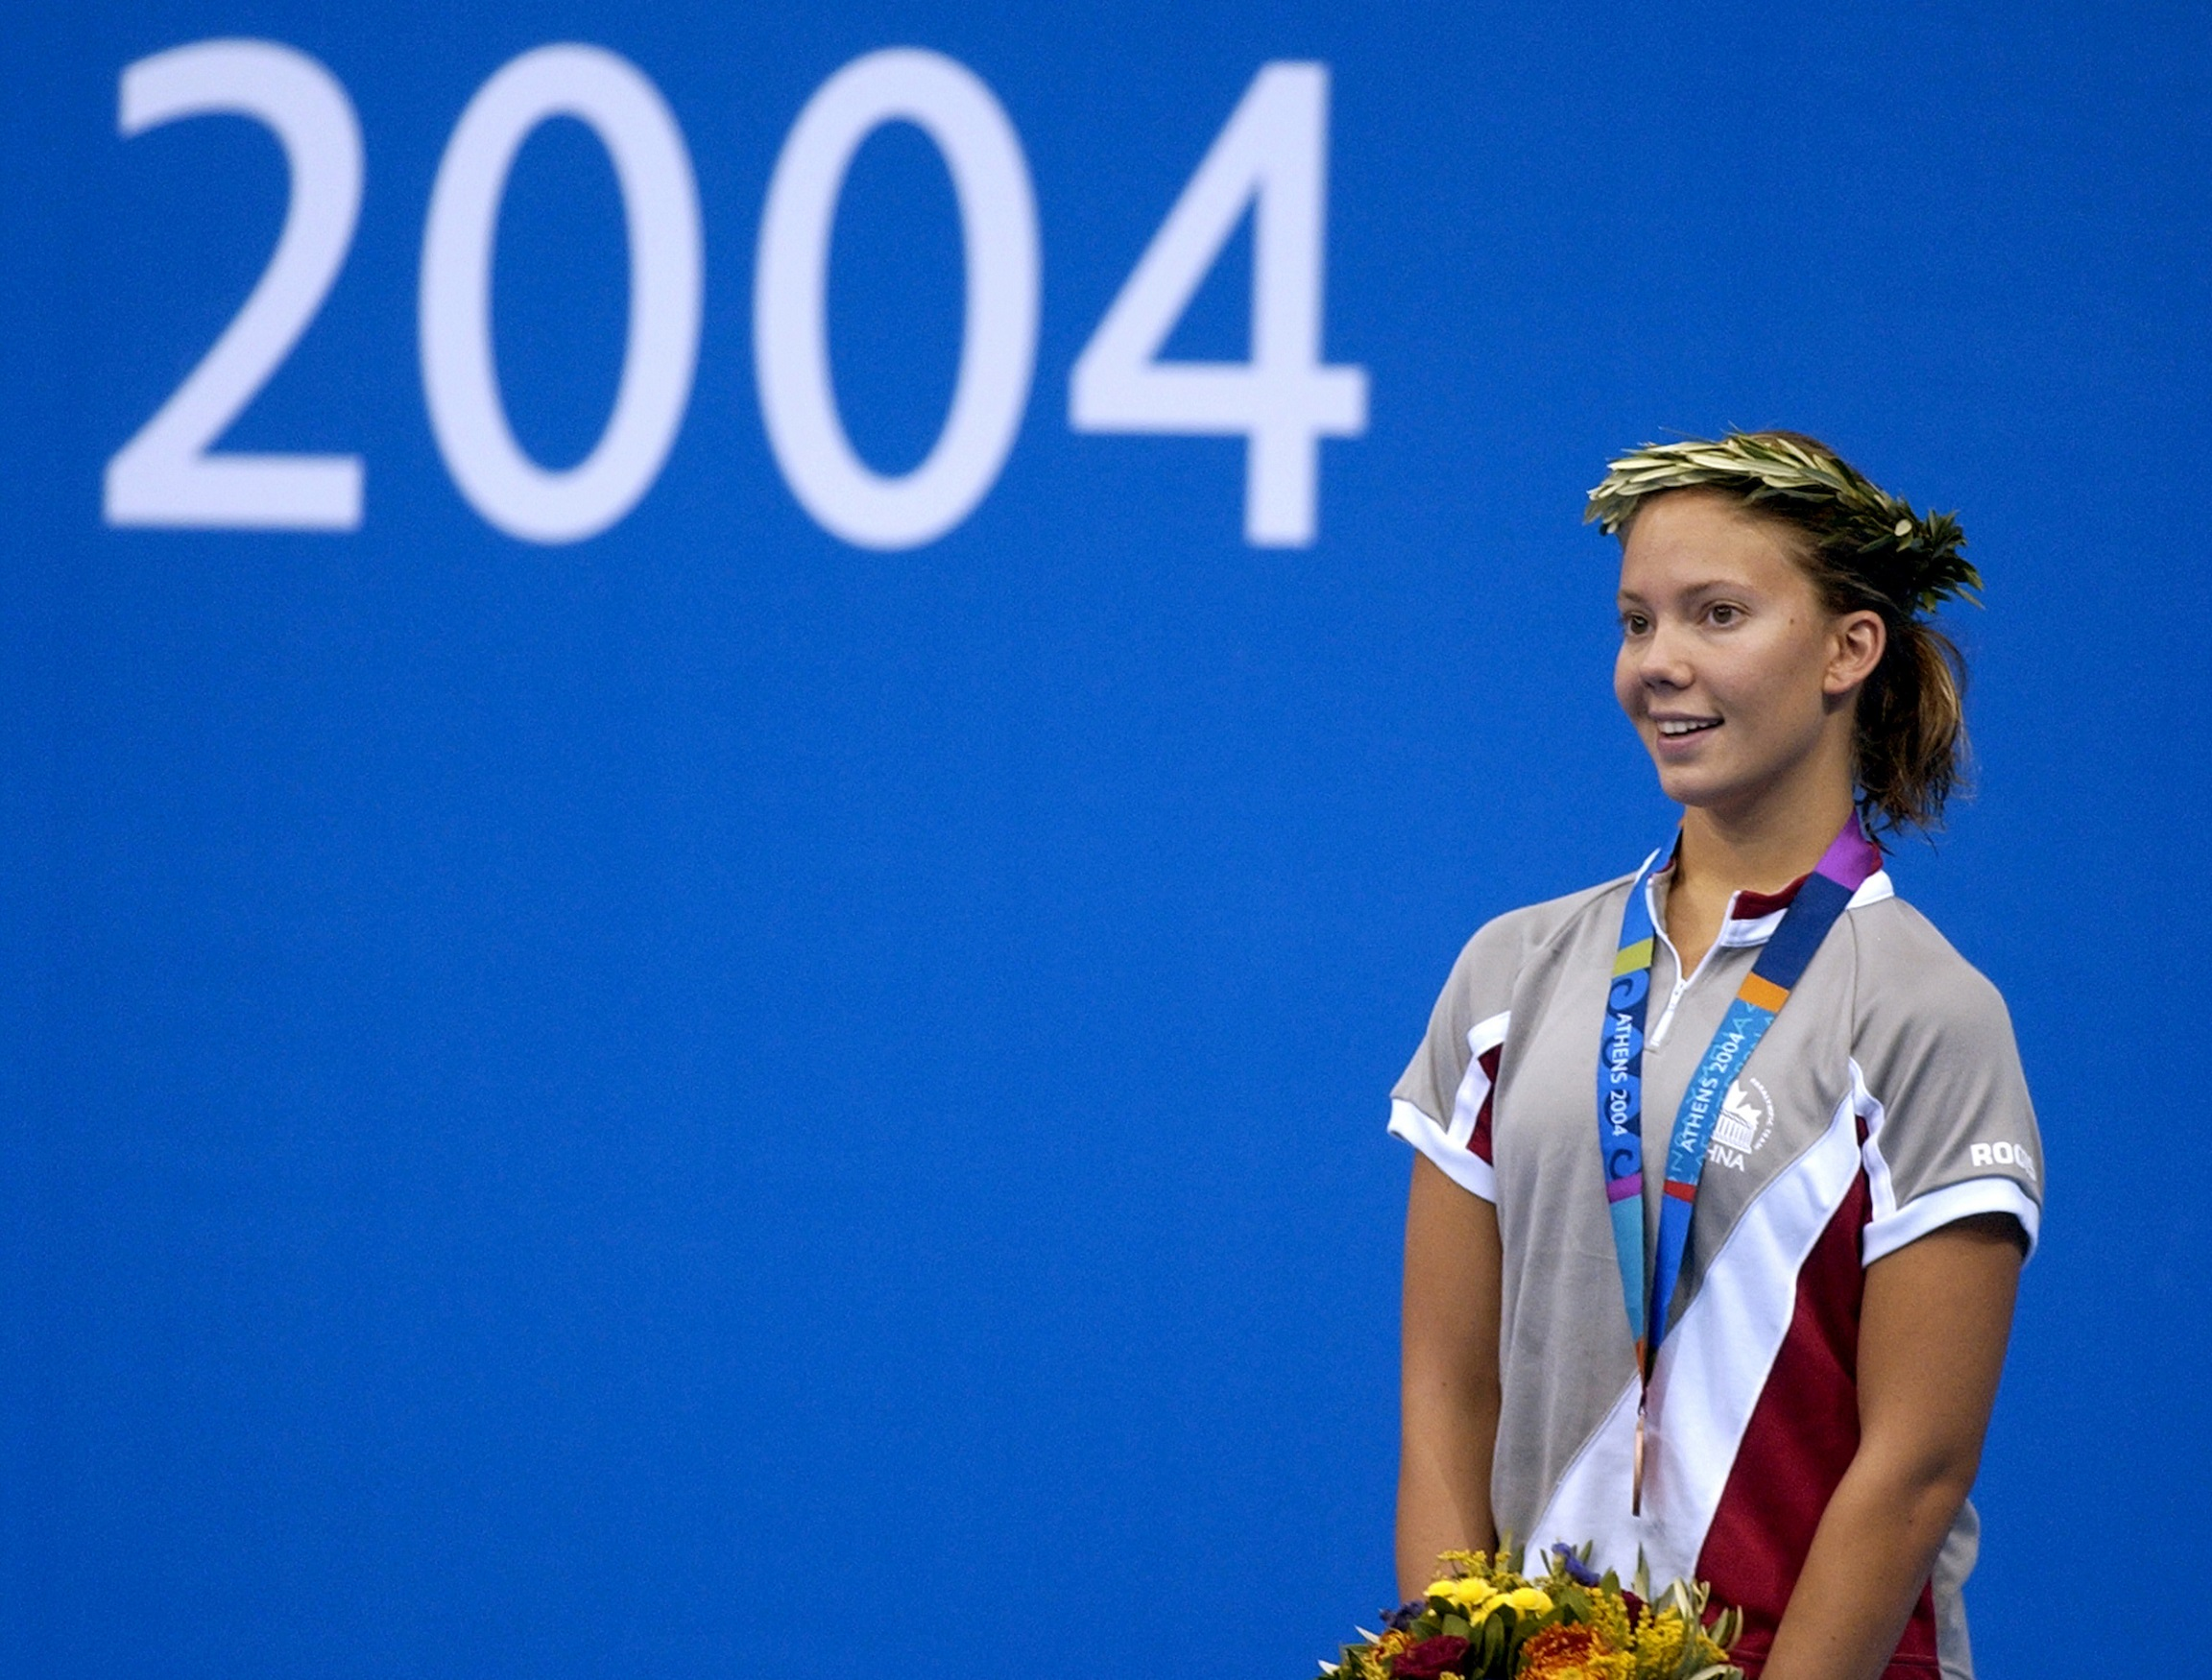 Danielle Campo standing on the podium at the Athens 2004 Paralympic Games.